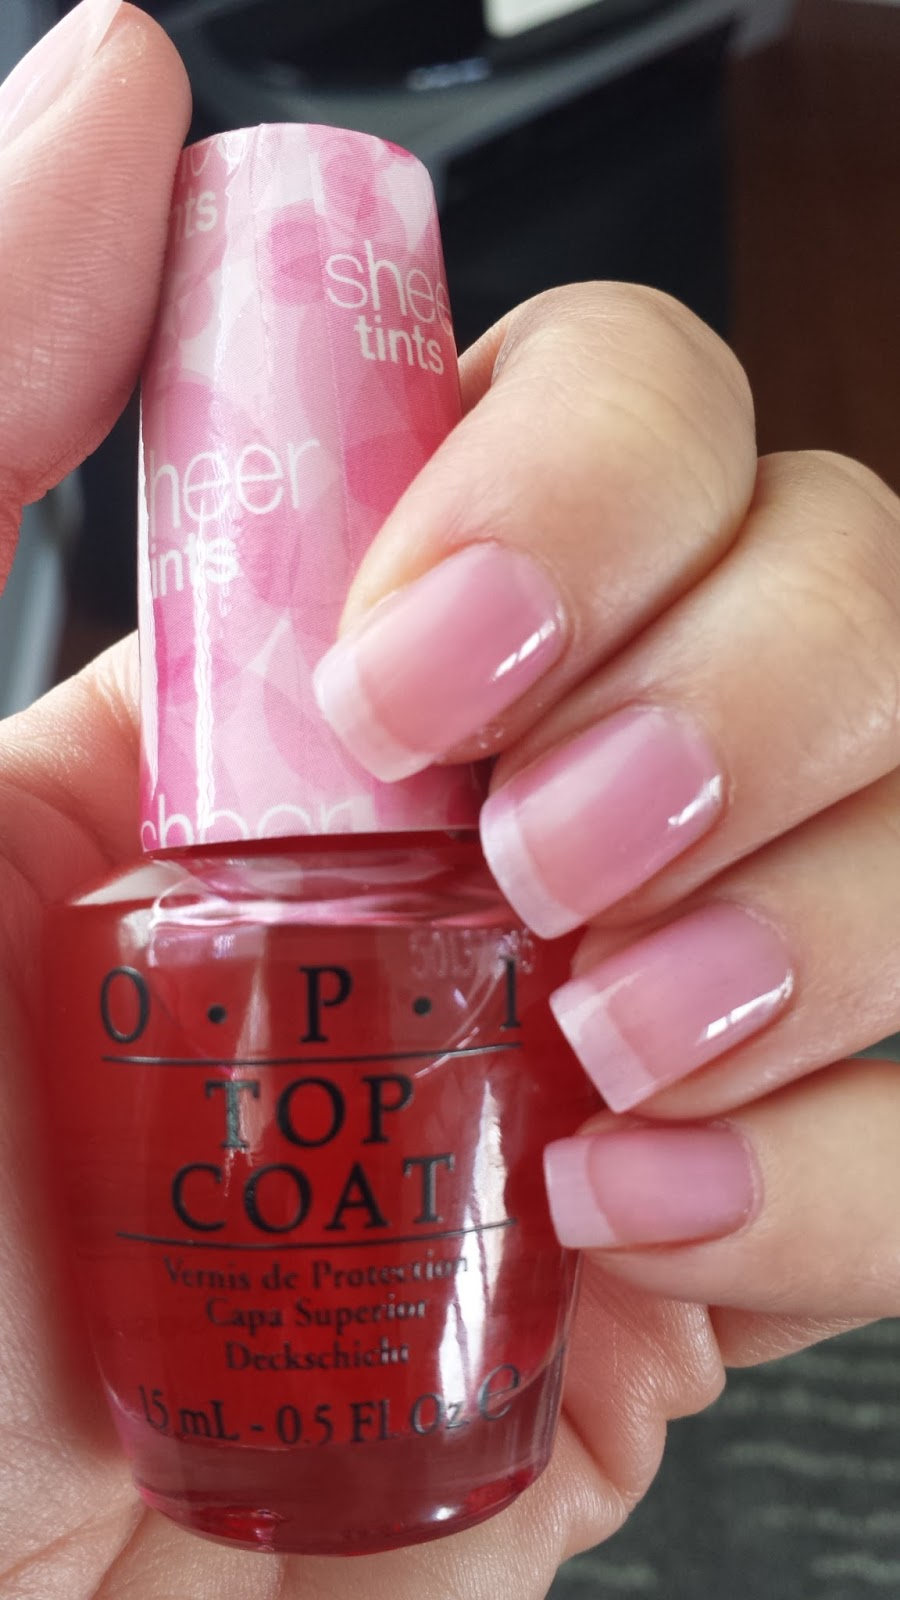 Lipgloss Break: pink nail polish